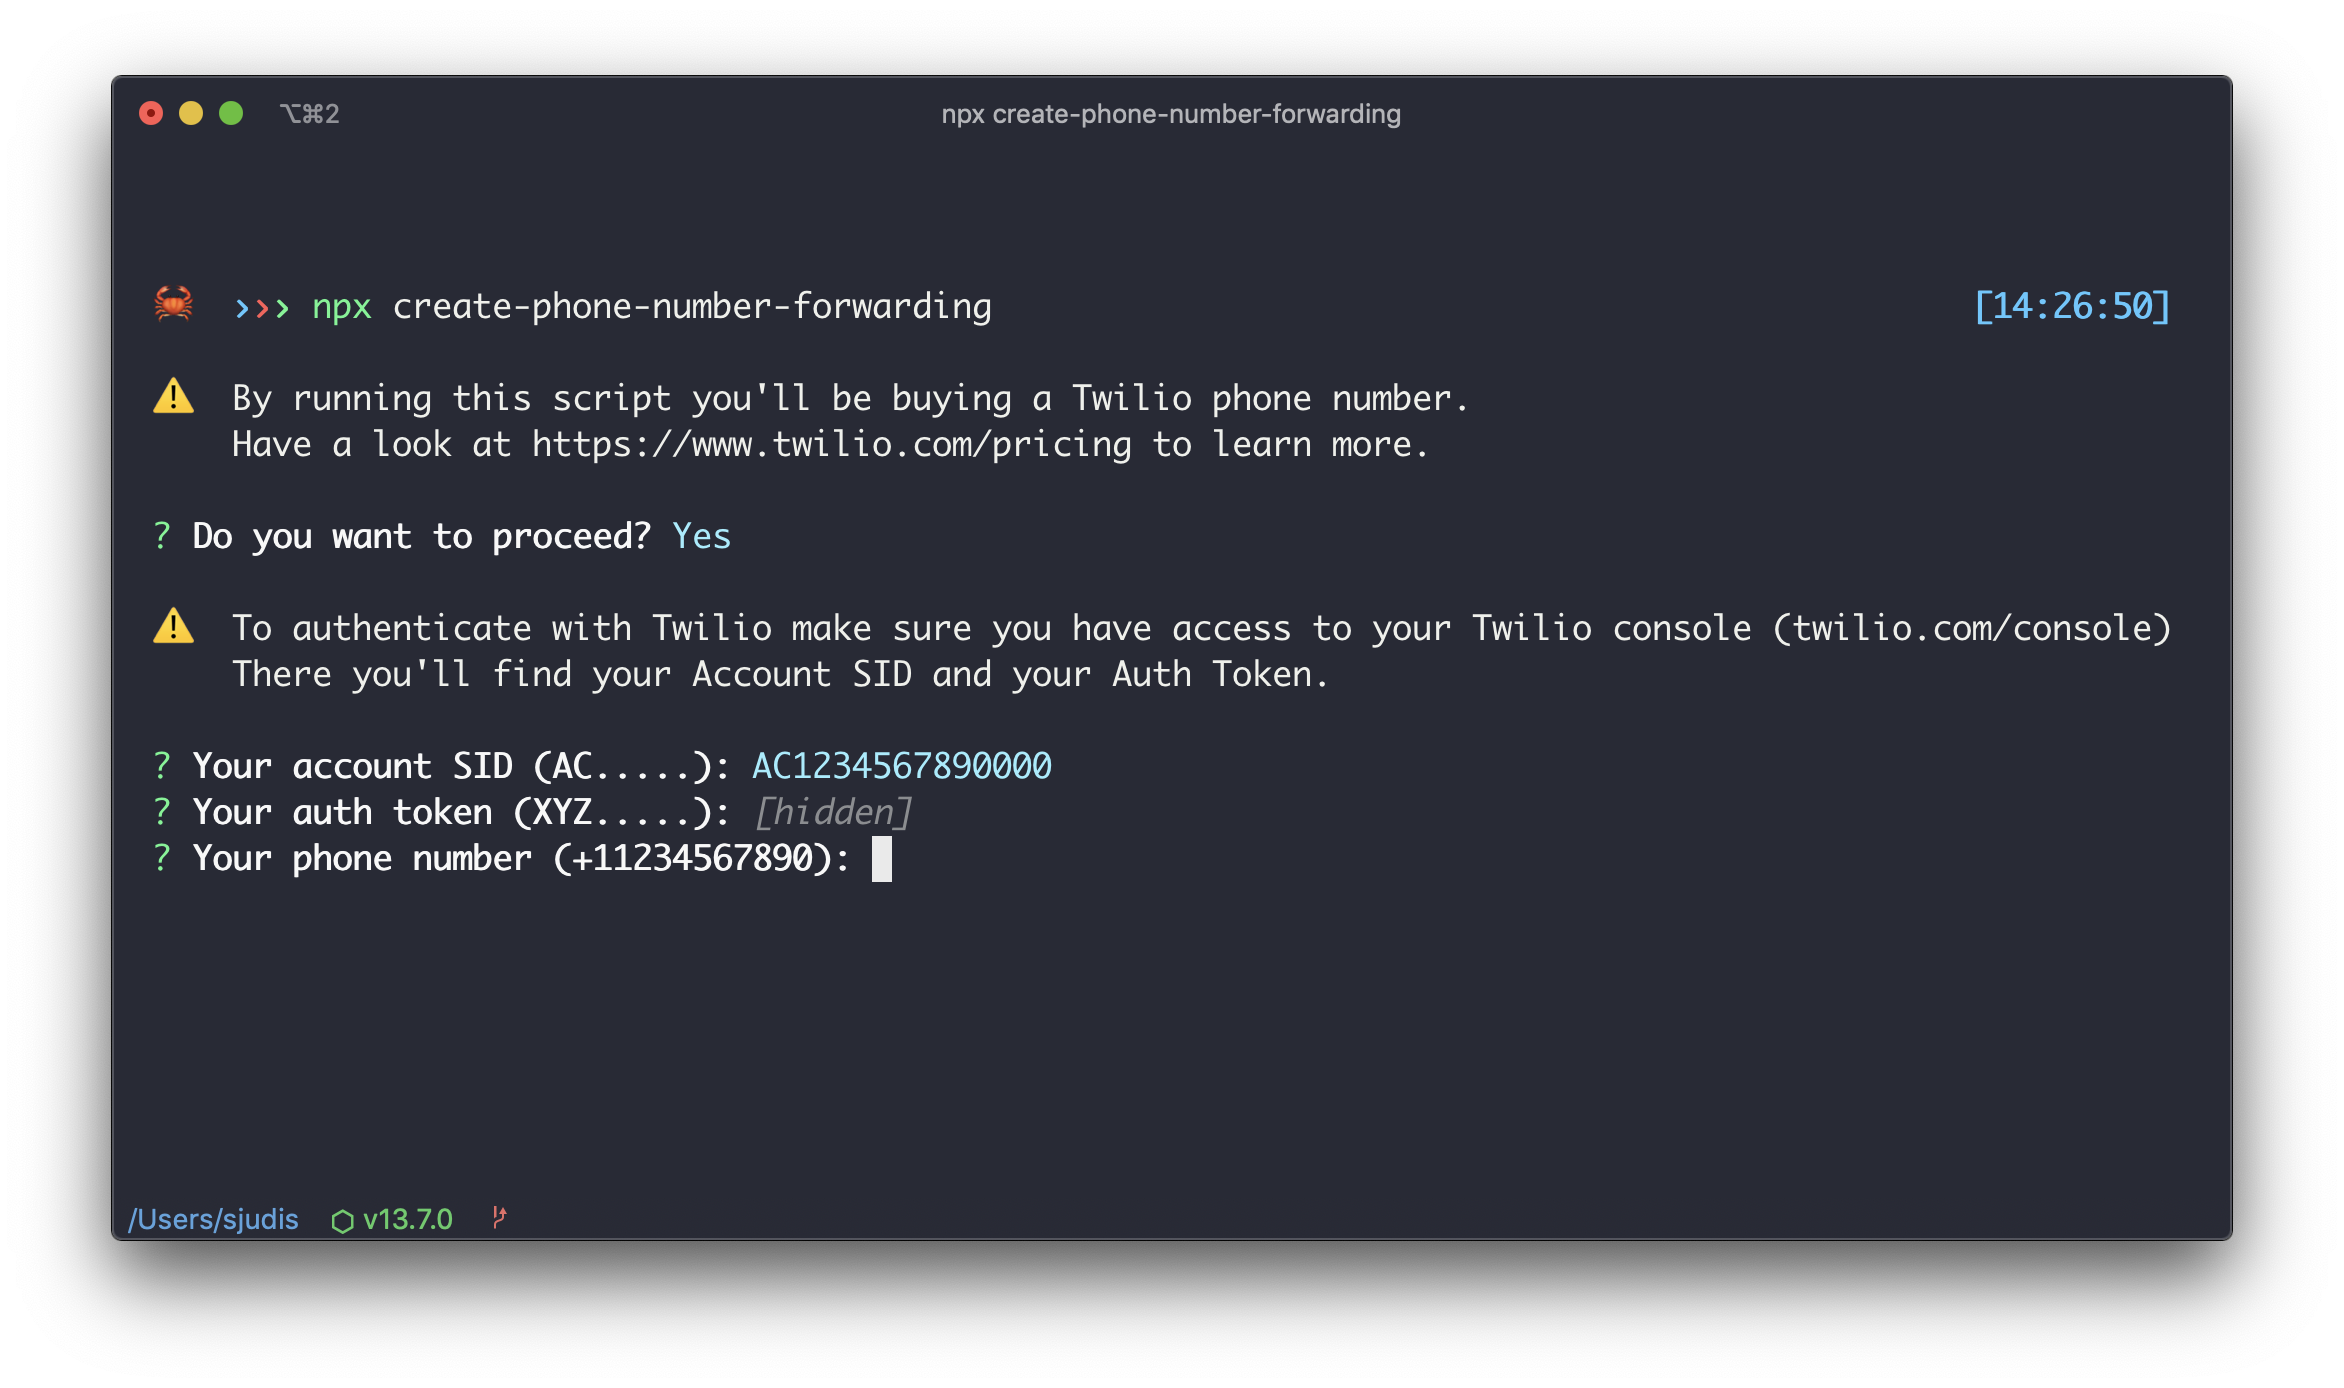 create-phone-number-forwarding in the terminal